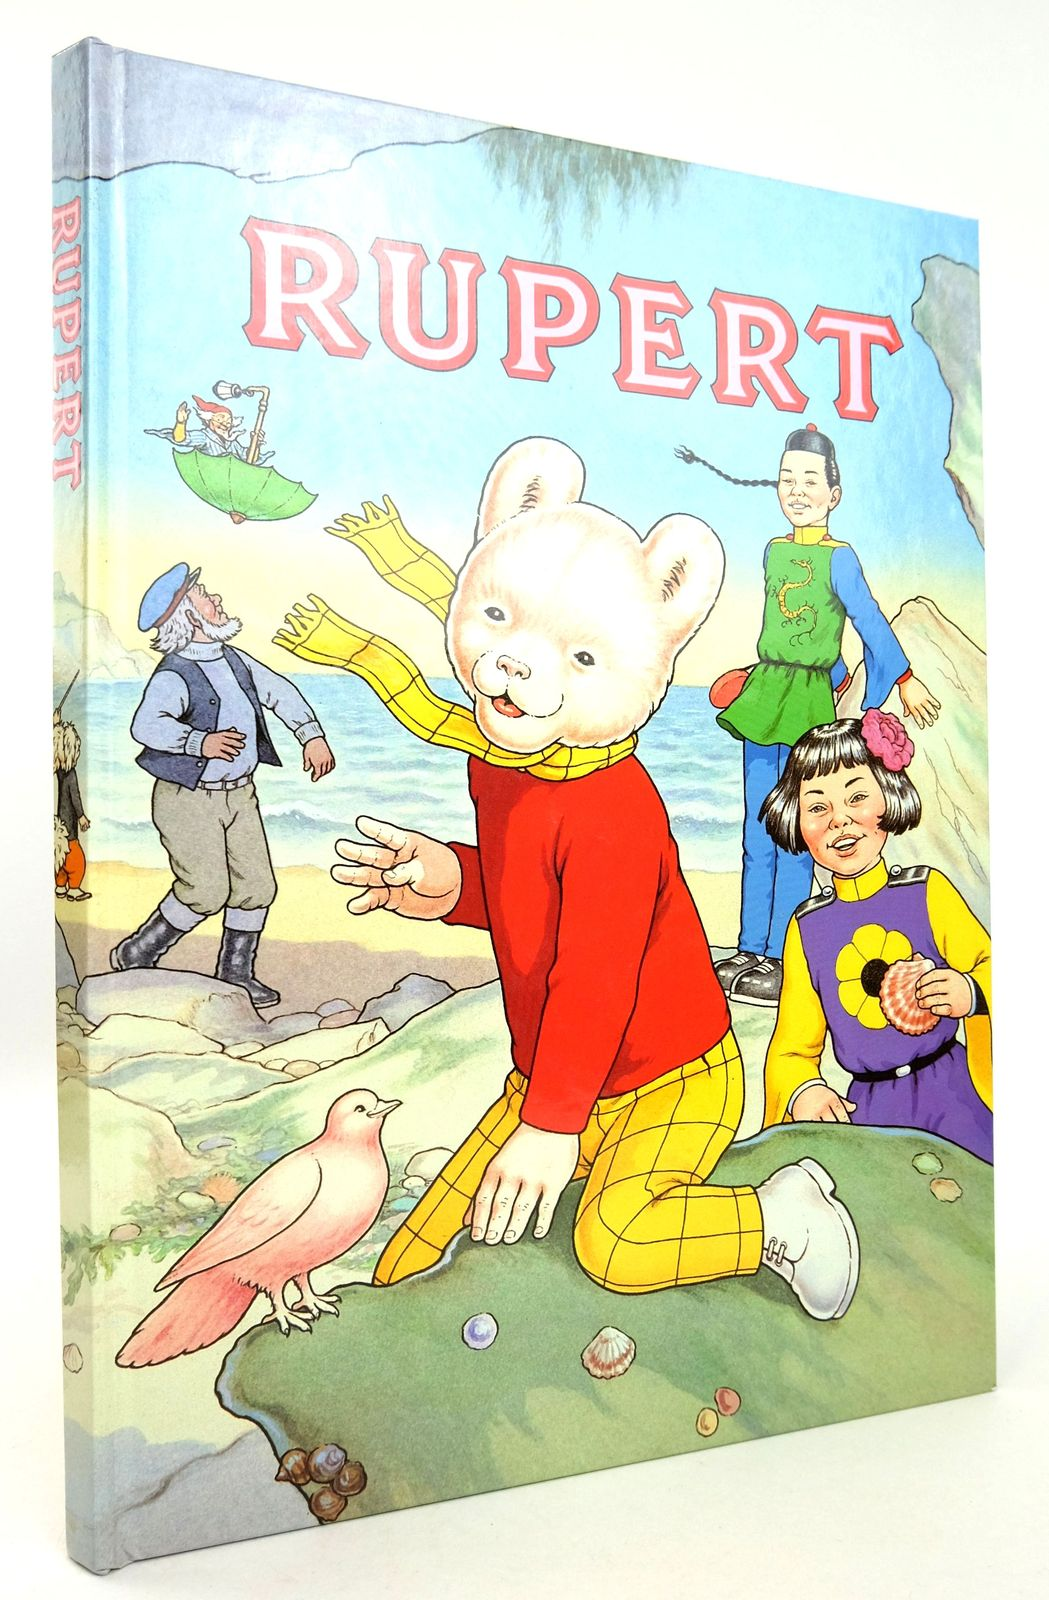 Photo of RUPERT ANNUAL 1991 written by Henderson, James Robinson, Ian illustrated by Harrold, John Bestall, Alfred published by Daily Express (STOCK CODE: 1819257)  for sale by Stella & Rose's Books